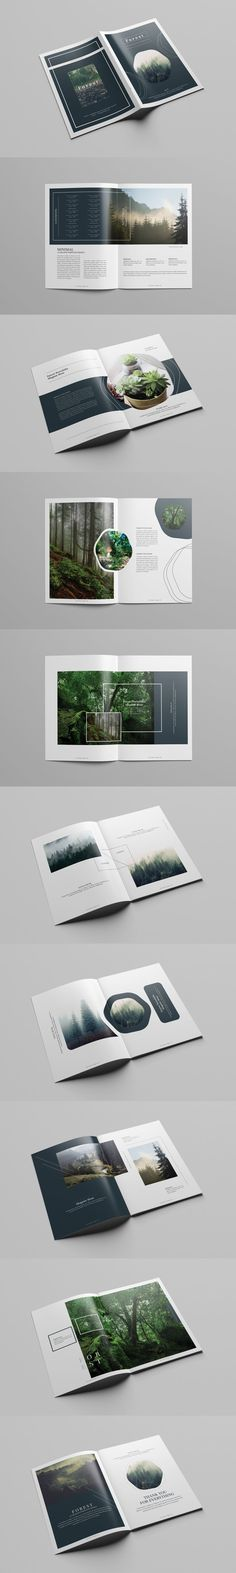 Multipurpose Creative Portfolio Brochure Template InDesign INDD - 36 Custom Pages, US Letter Size